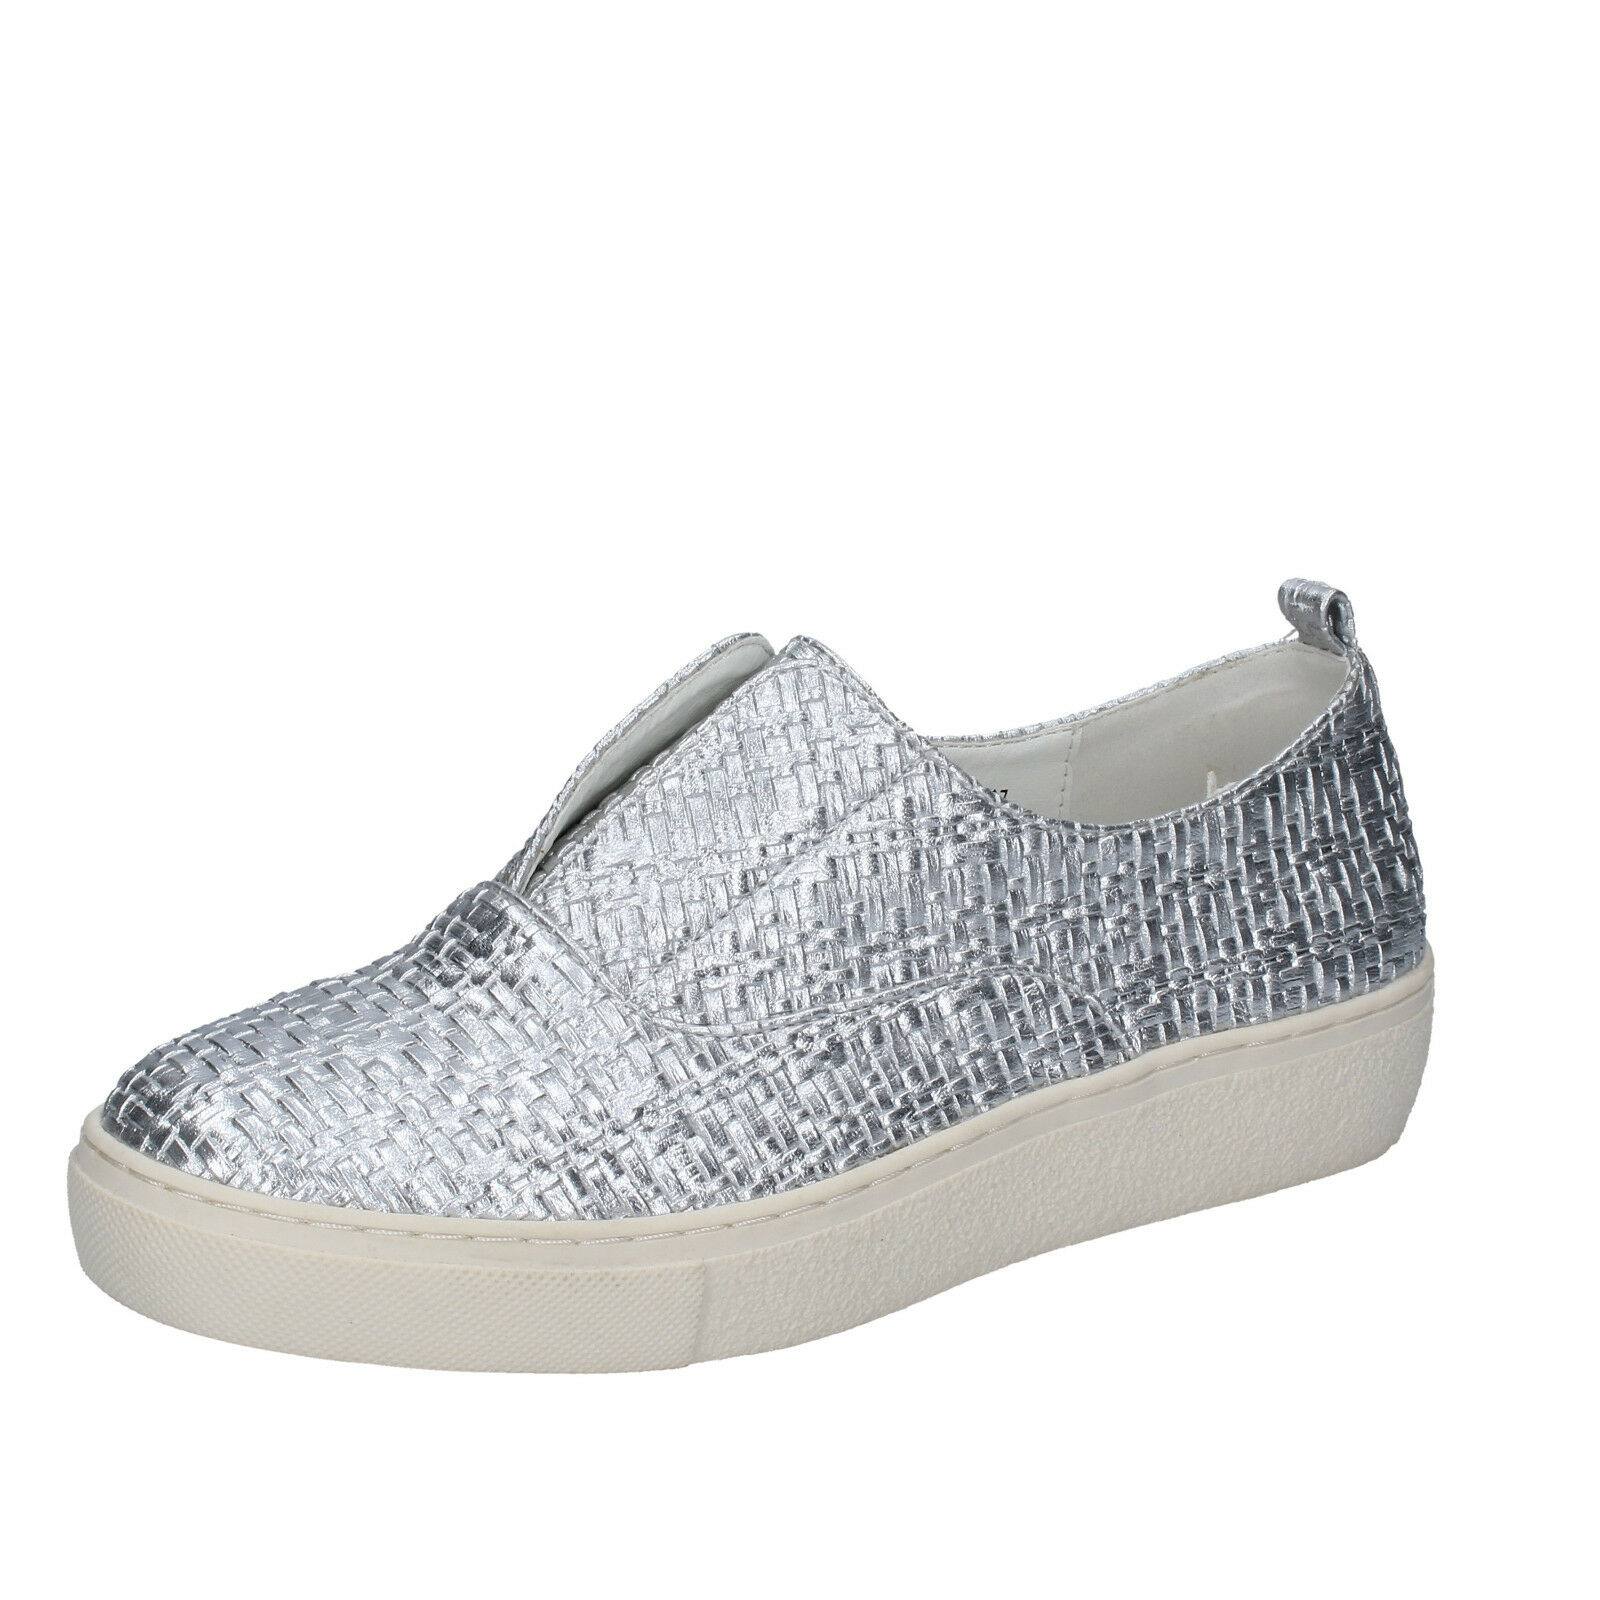 Scarpe donna FRANCESCO MILANO 36 UE SLIP ON PELLE argentooO bs79-36